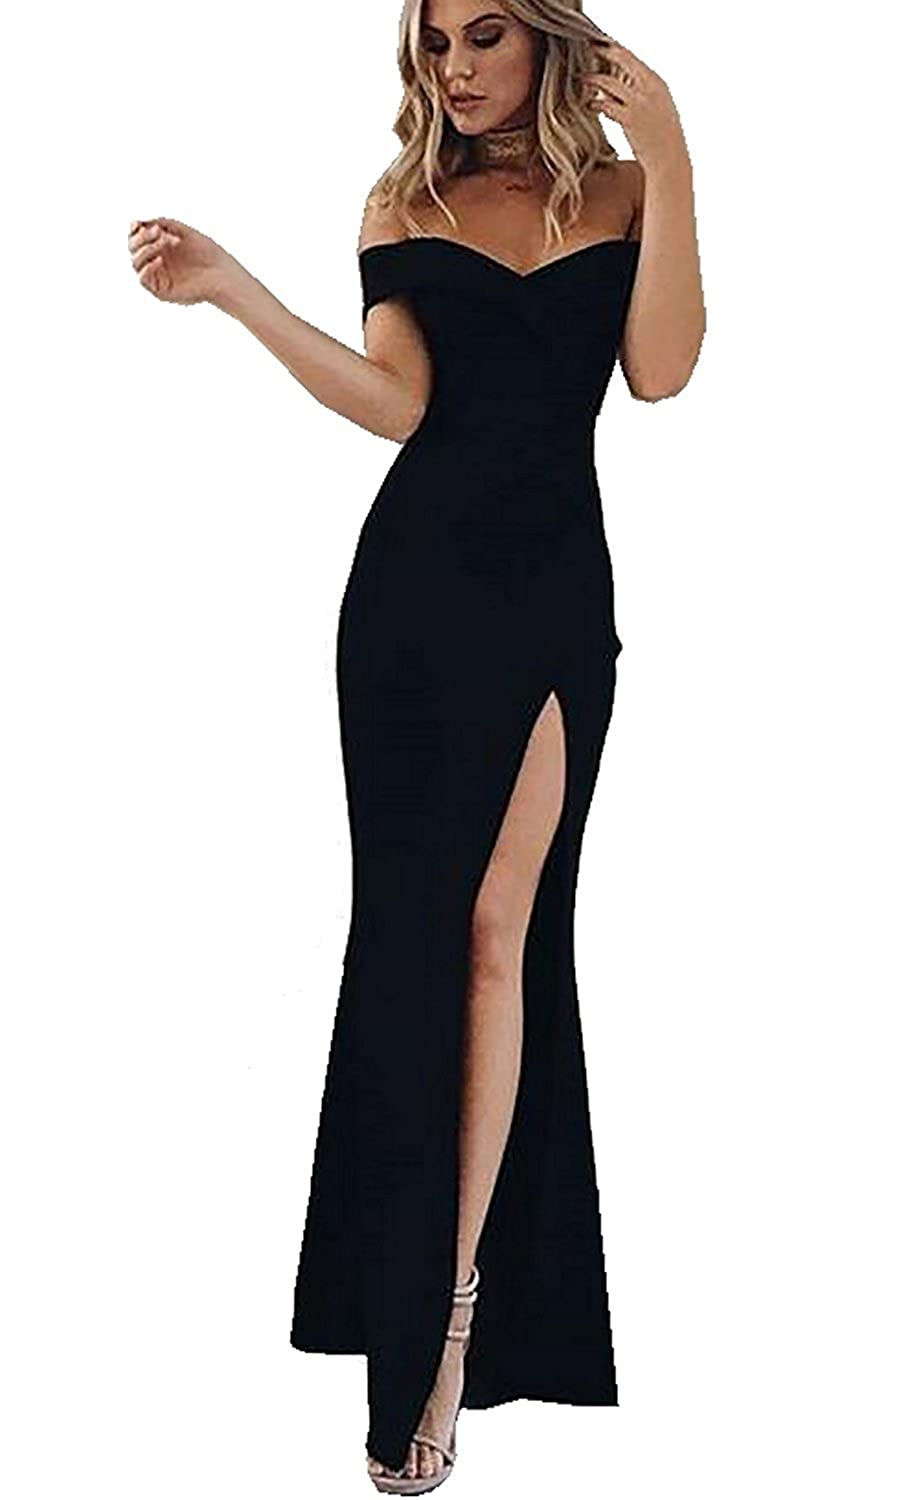 52e88014468 Top 10 wholesale Sexiest Bodycon Dresses - Chinabrands.com